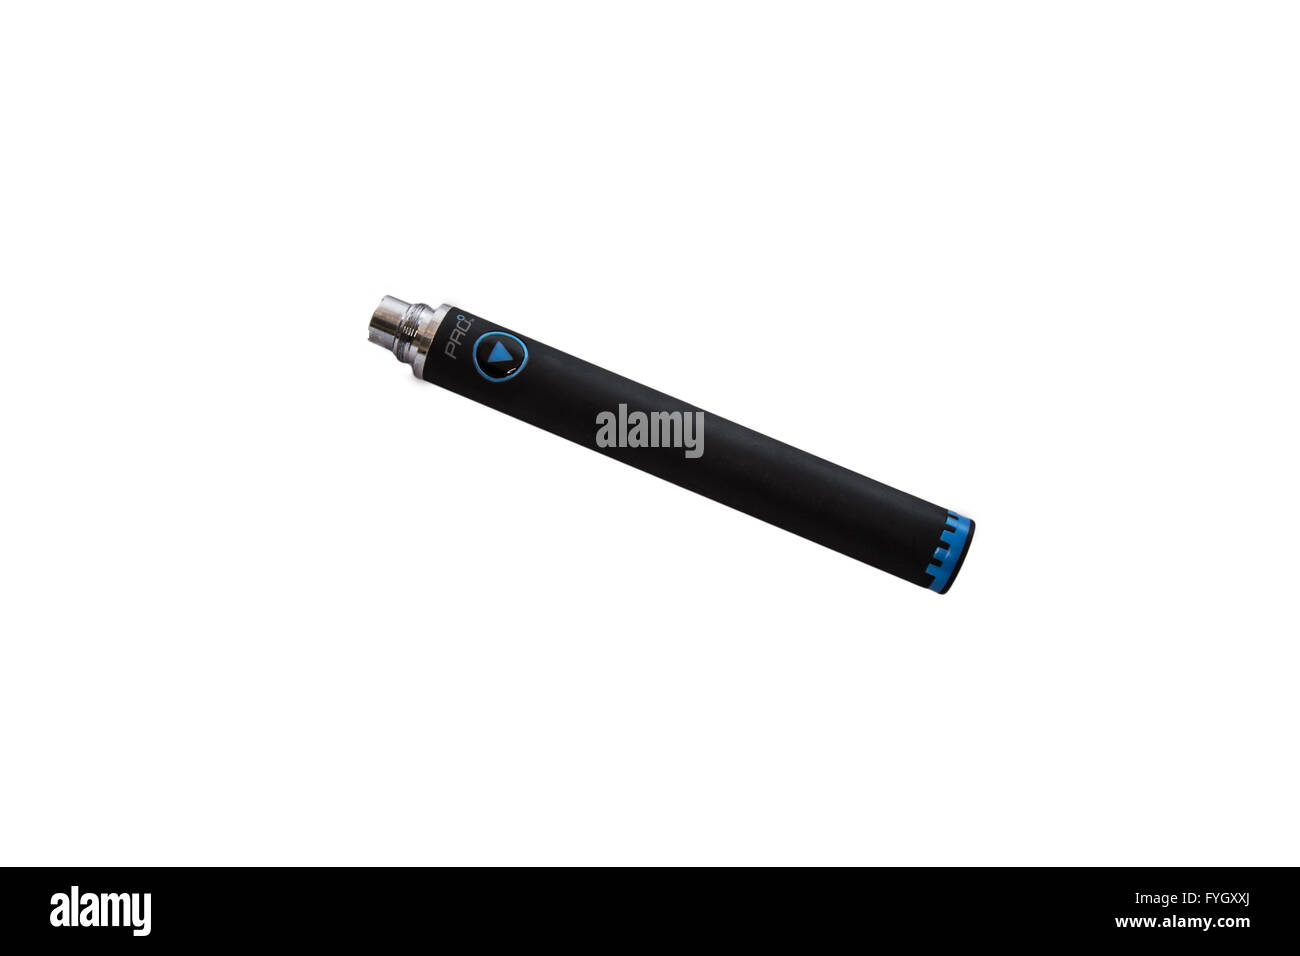 A Blu E-Cig battery - Stock Image